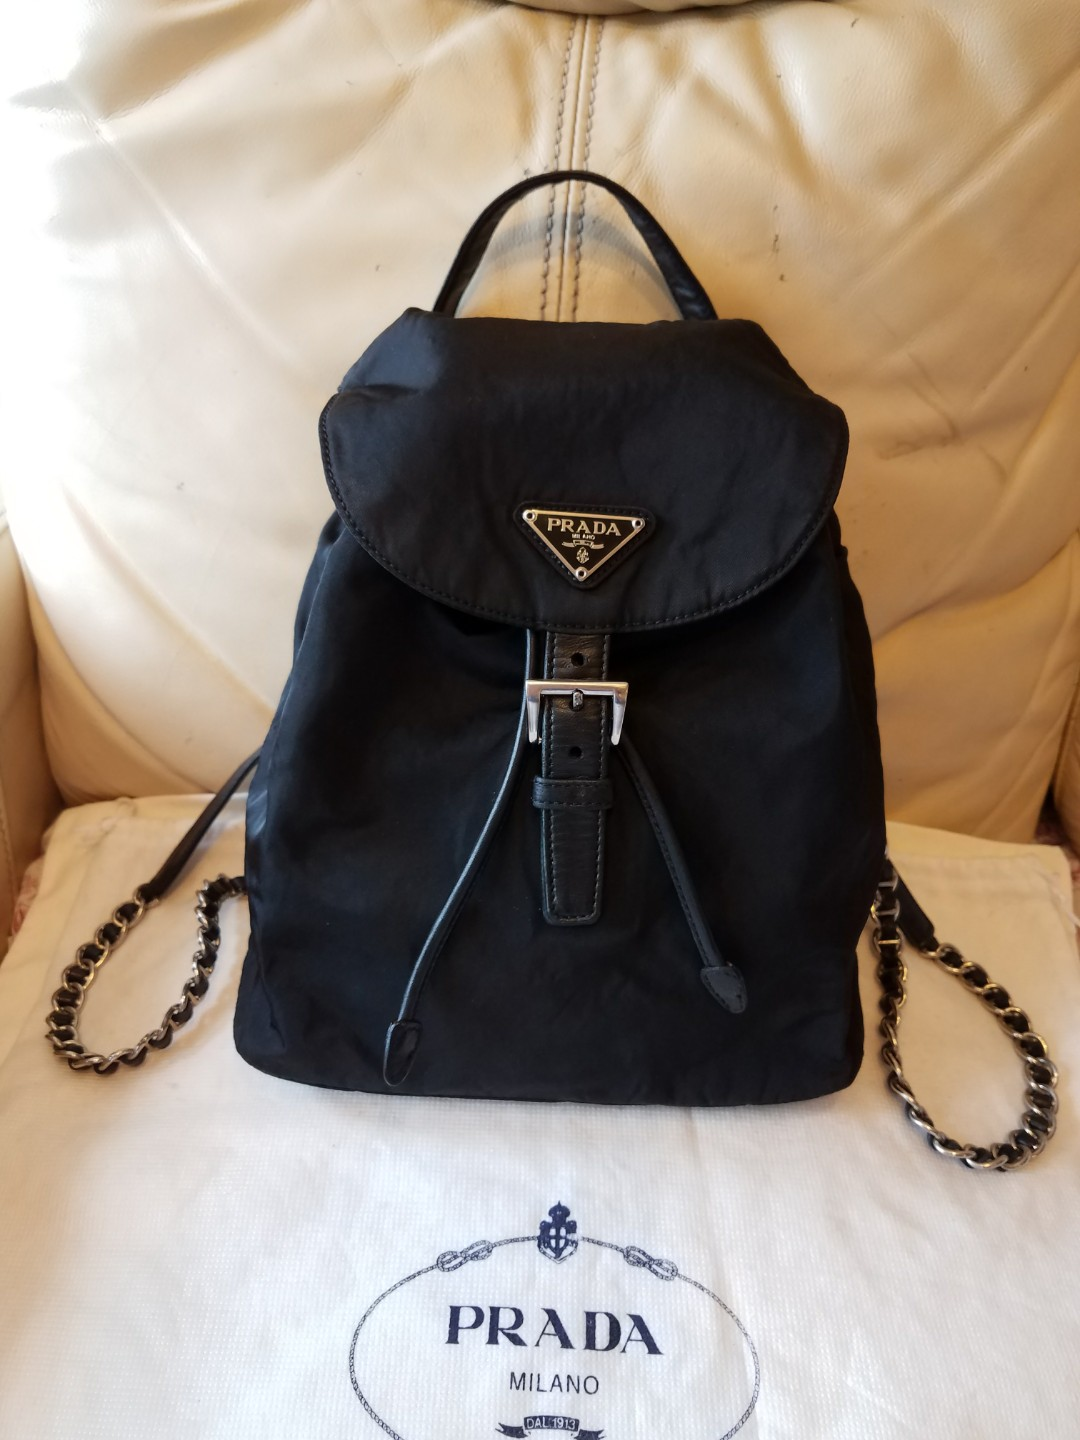 ... low cost authentic prada backpack luxury bags wallets on carousell  622cb fe4d4 c532cfa9cca61